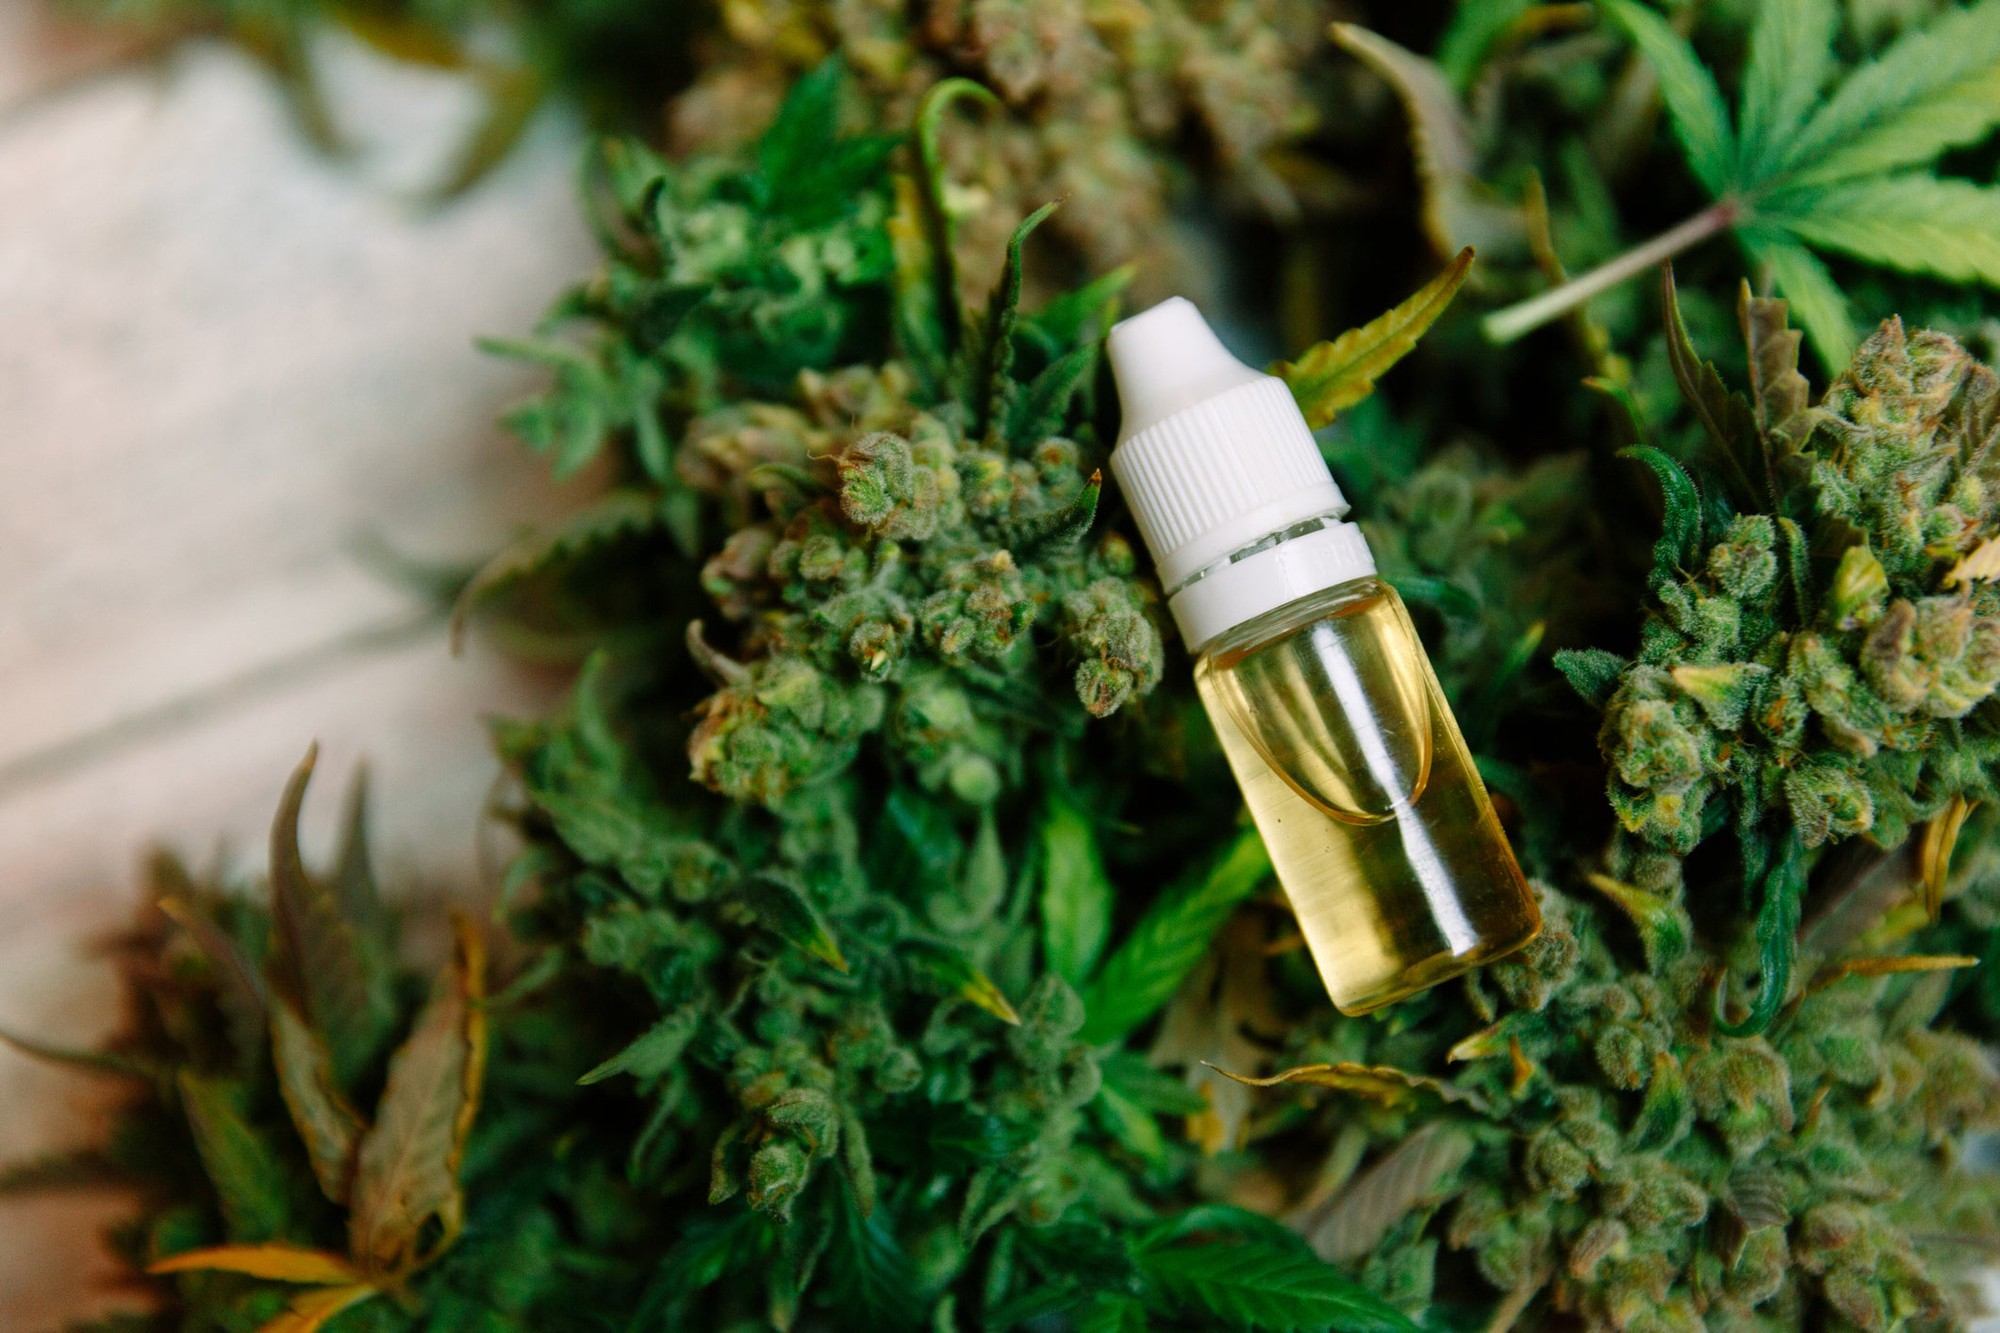 A small vial of cannabidiol oil lying atop an assortment of dried cannabis flowers